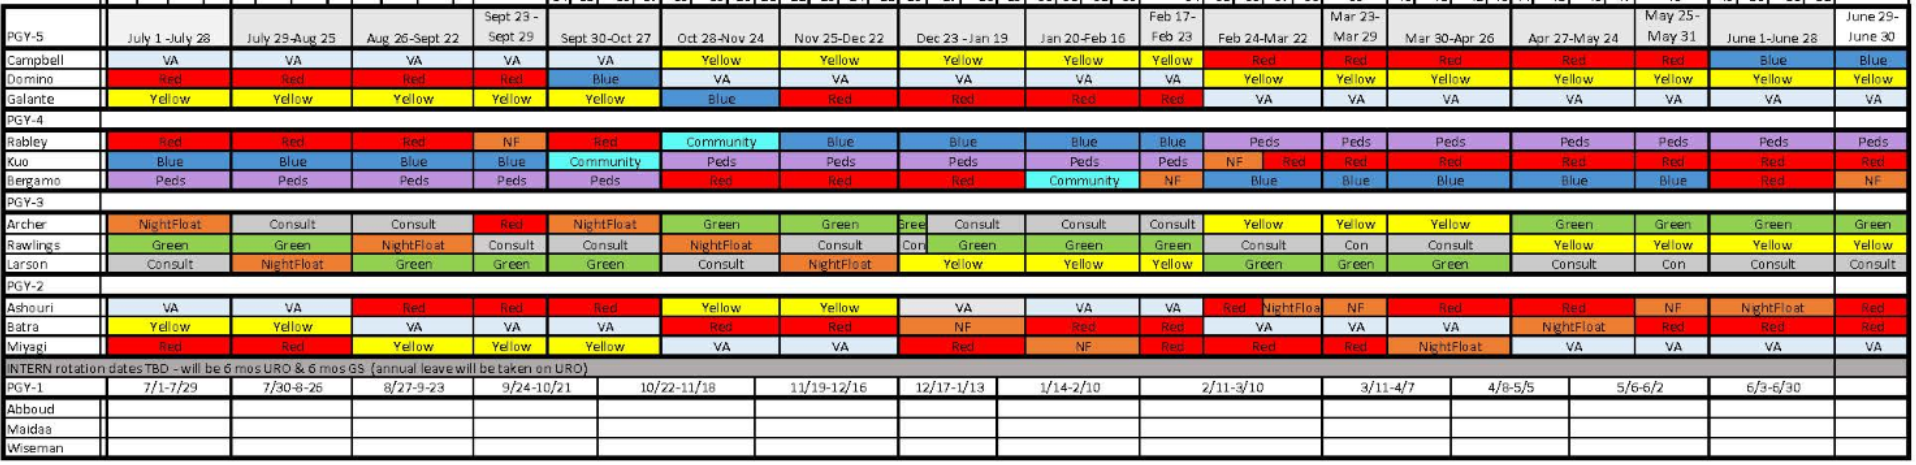 picture of the rotation schedule